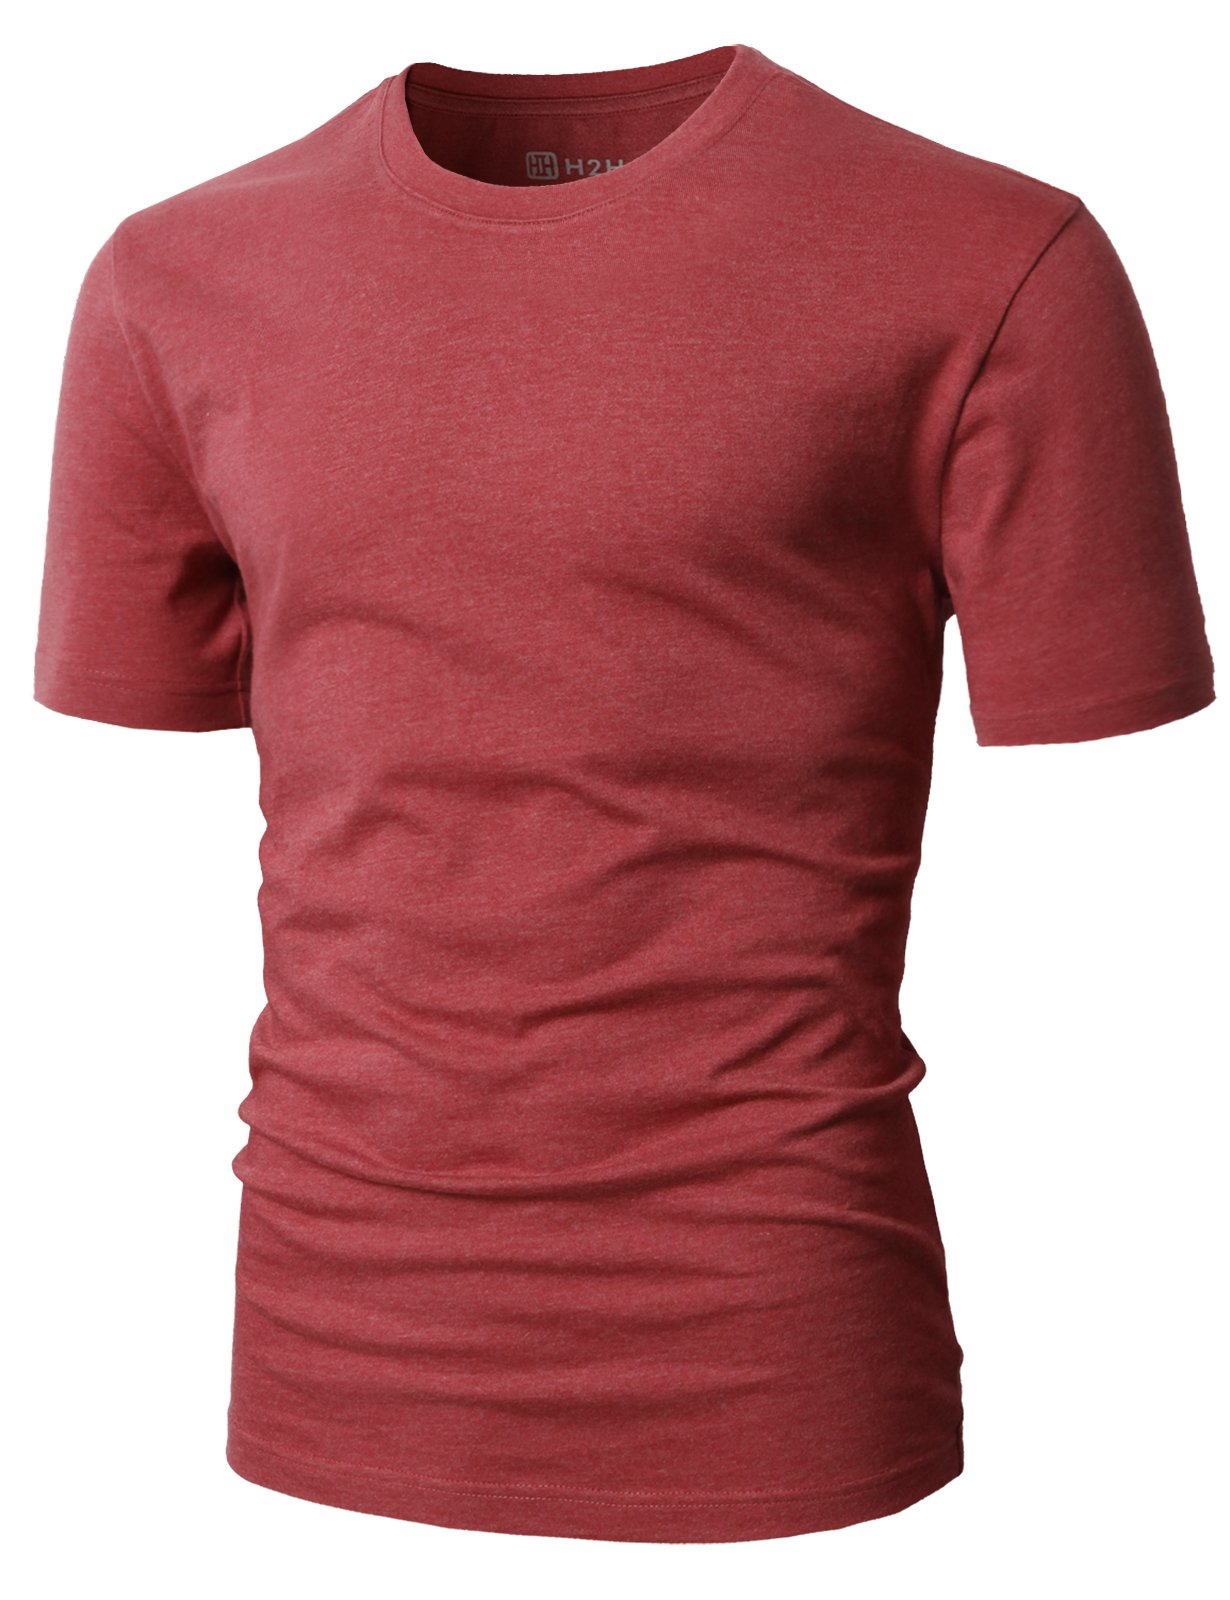 H2H Mens Business & Daily Item Fine Soft Cotton Crew Neck T-Shirt Maroon US S/Asia M (CMTTS0198)